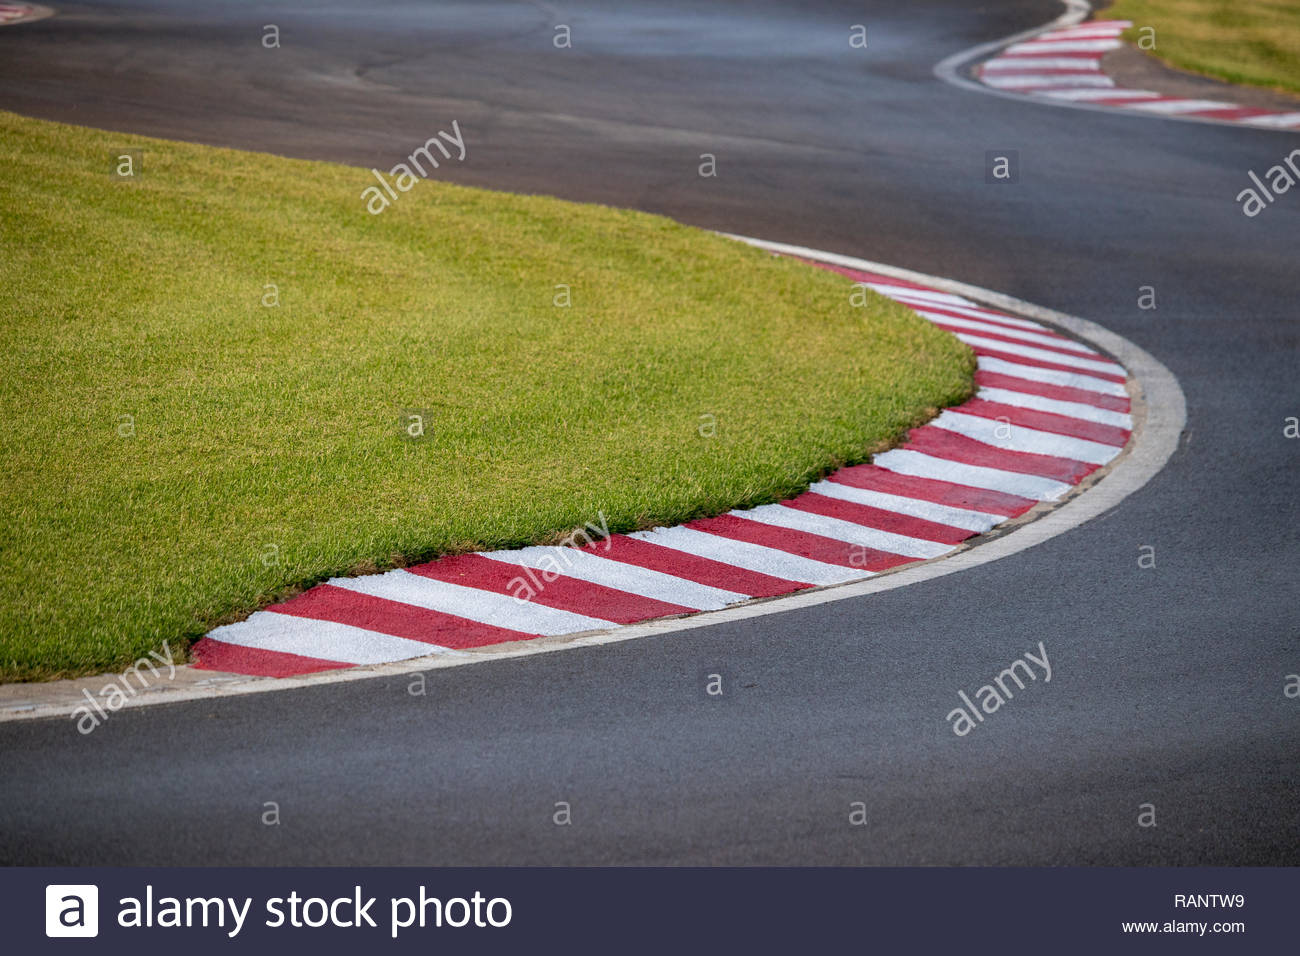 karts circuit curve as a concept of difficulty, effort and new challenges - Stock Image